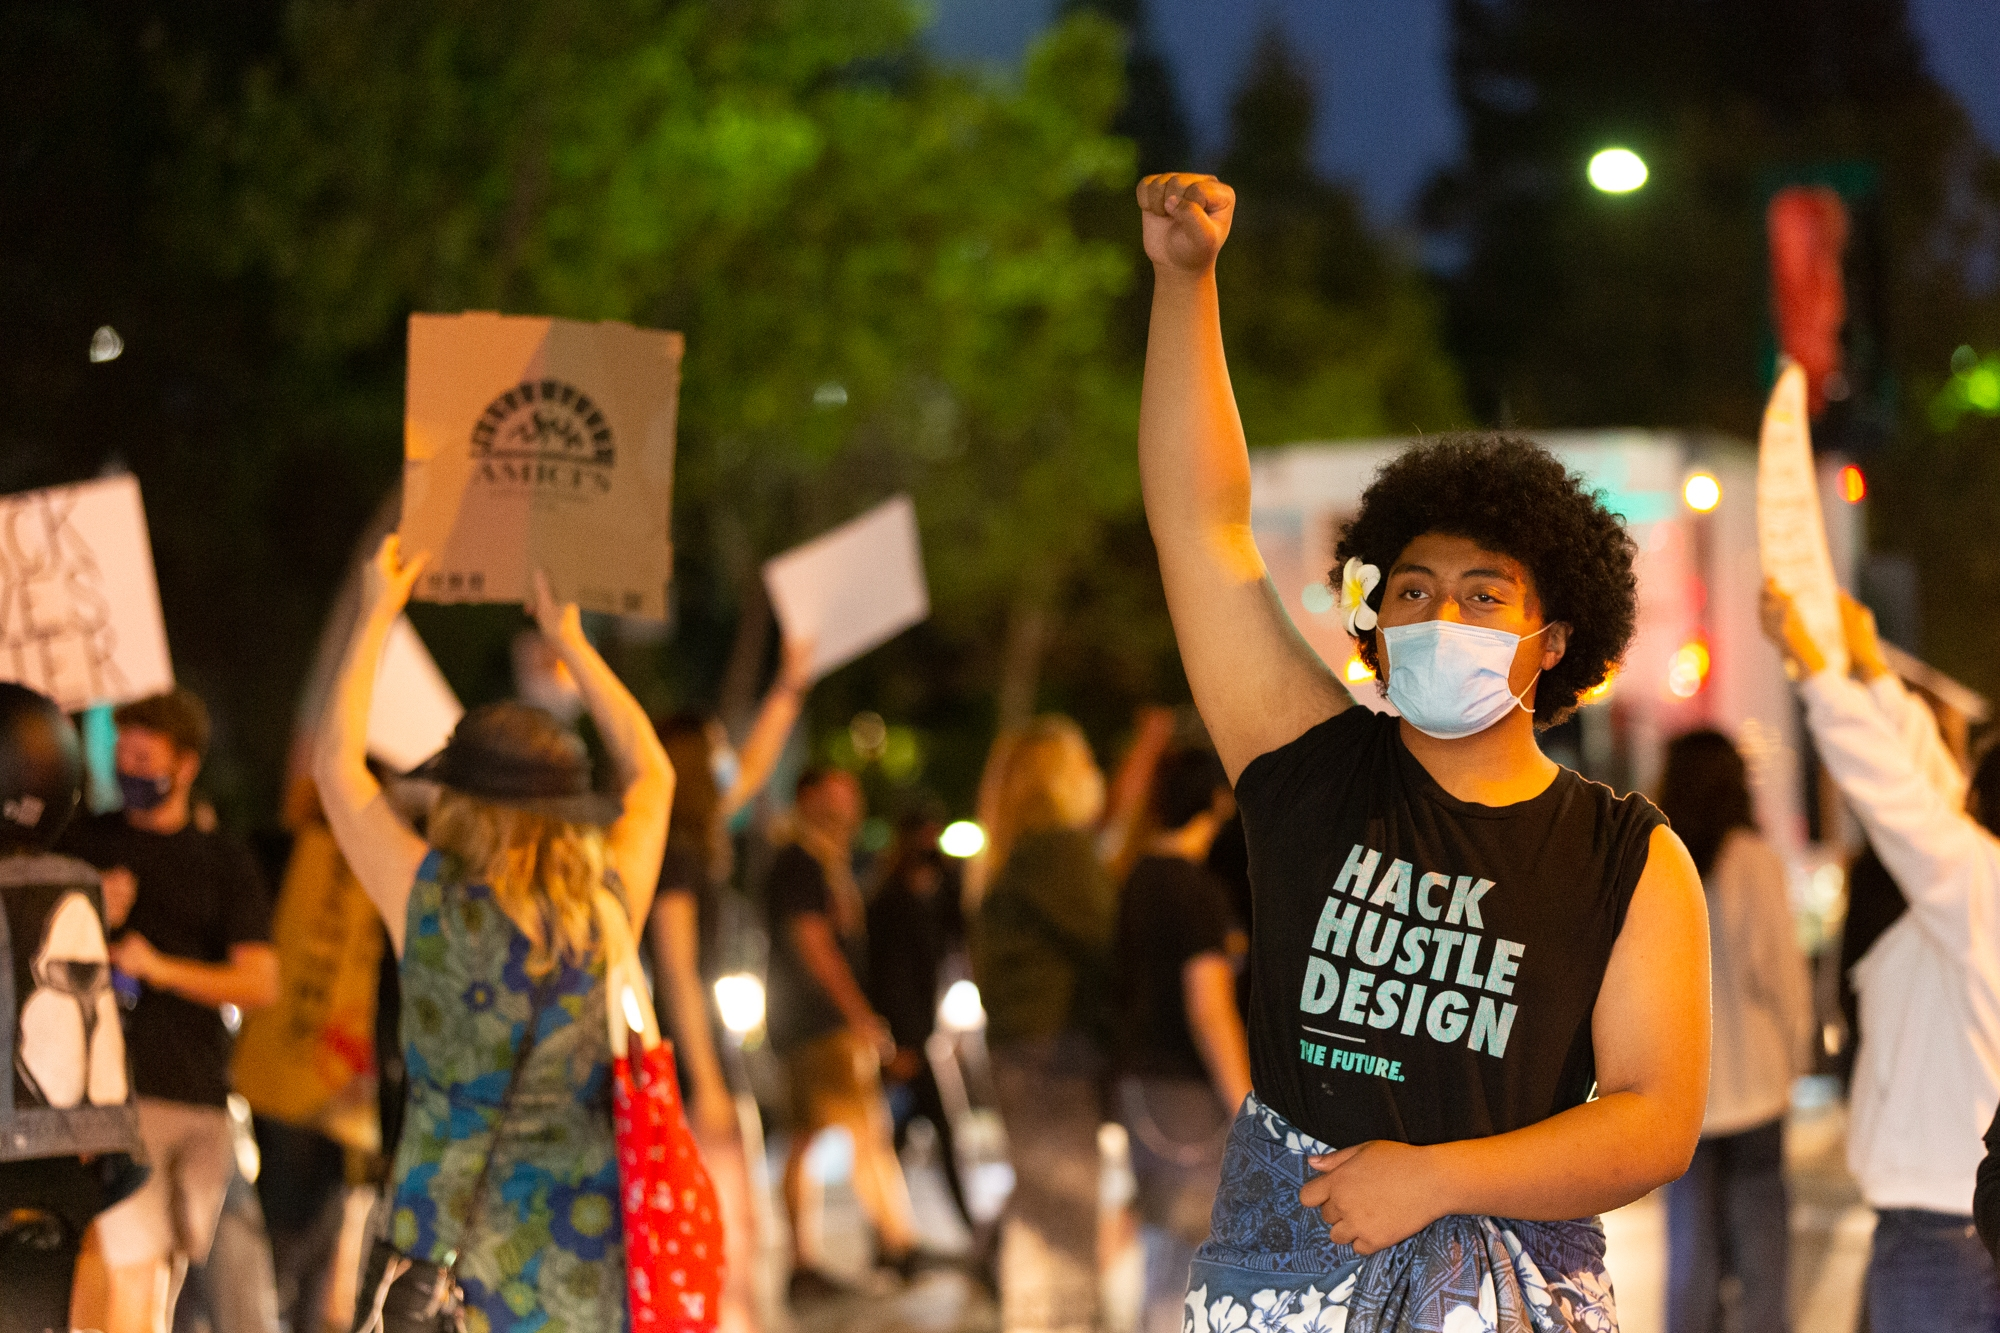 Protesters Demanding Justice For Breonna Taylor Stop Traffic In Menlo Park News Palo Alto Online